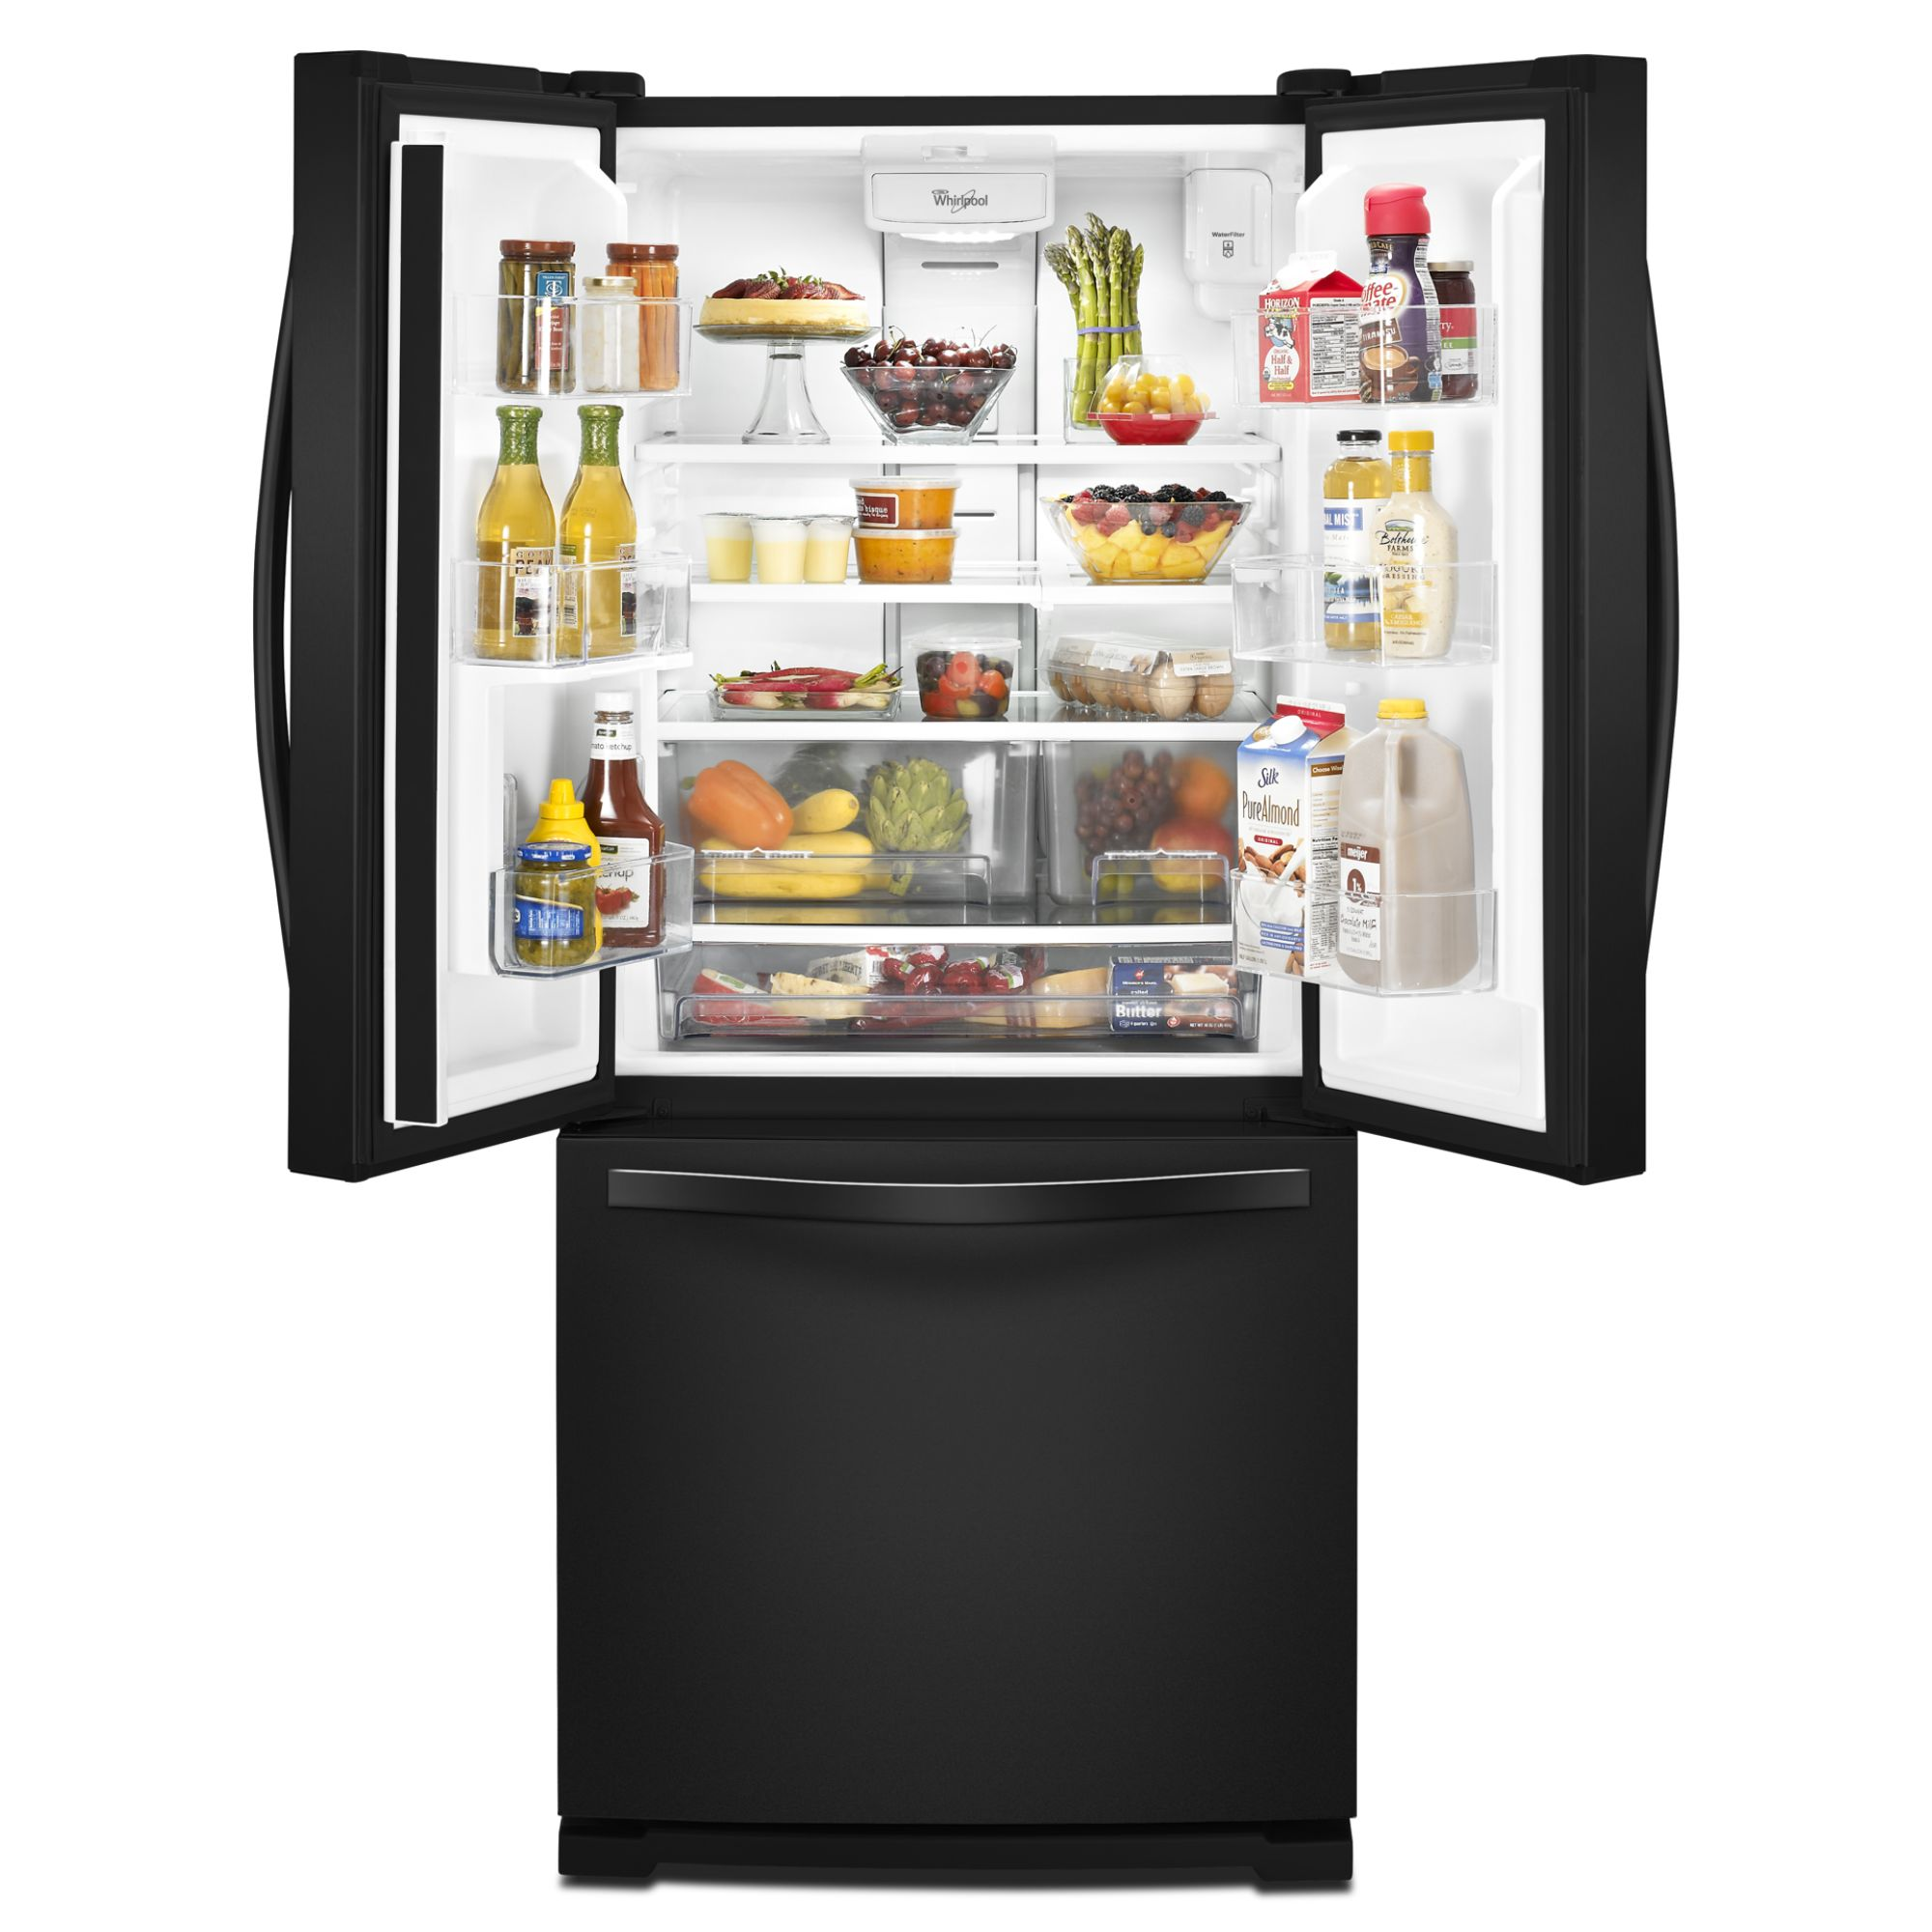 Whirlpool WRF560SEYB 19.7 cu. ft. French Door Black Refrigerator